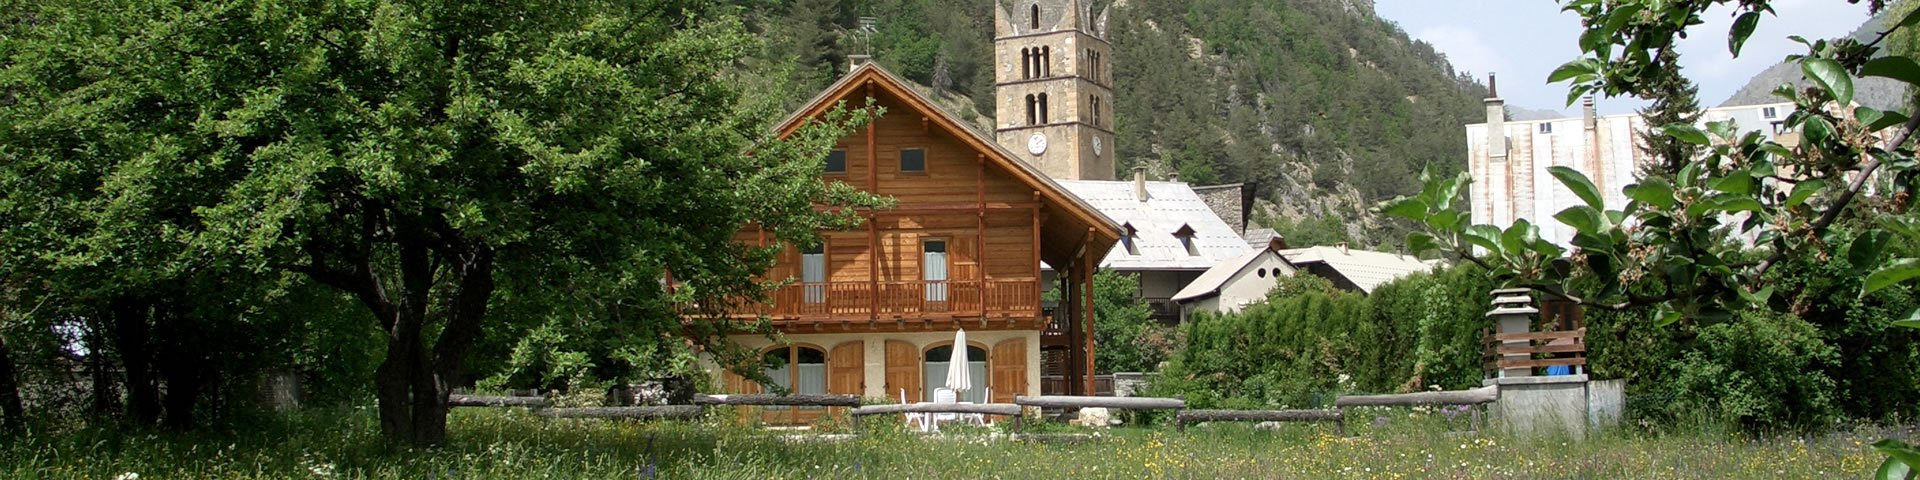 chalet chabrand accommodation french alps